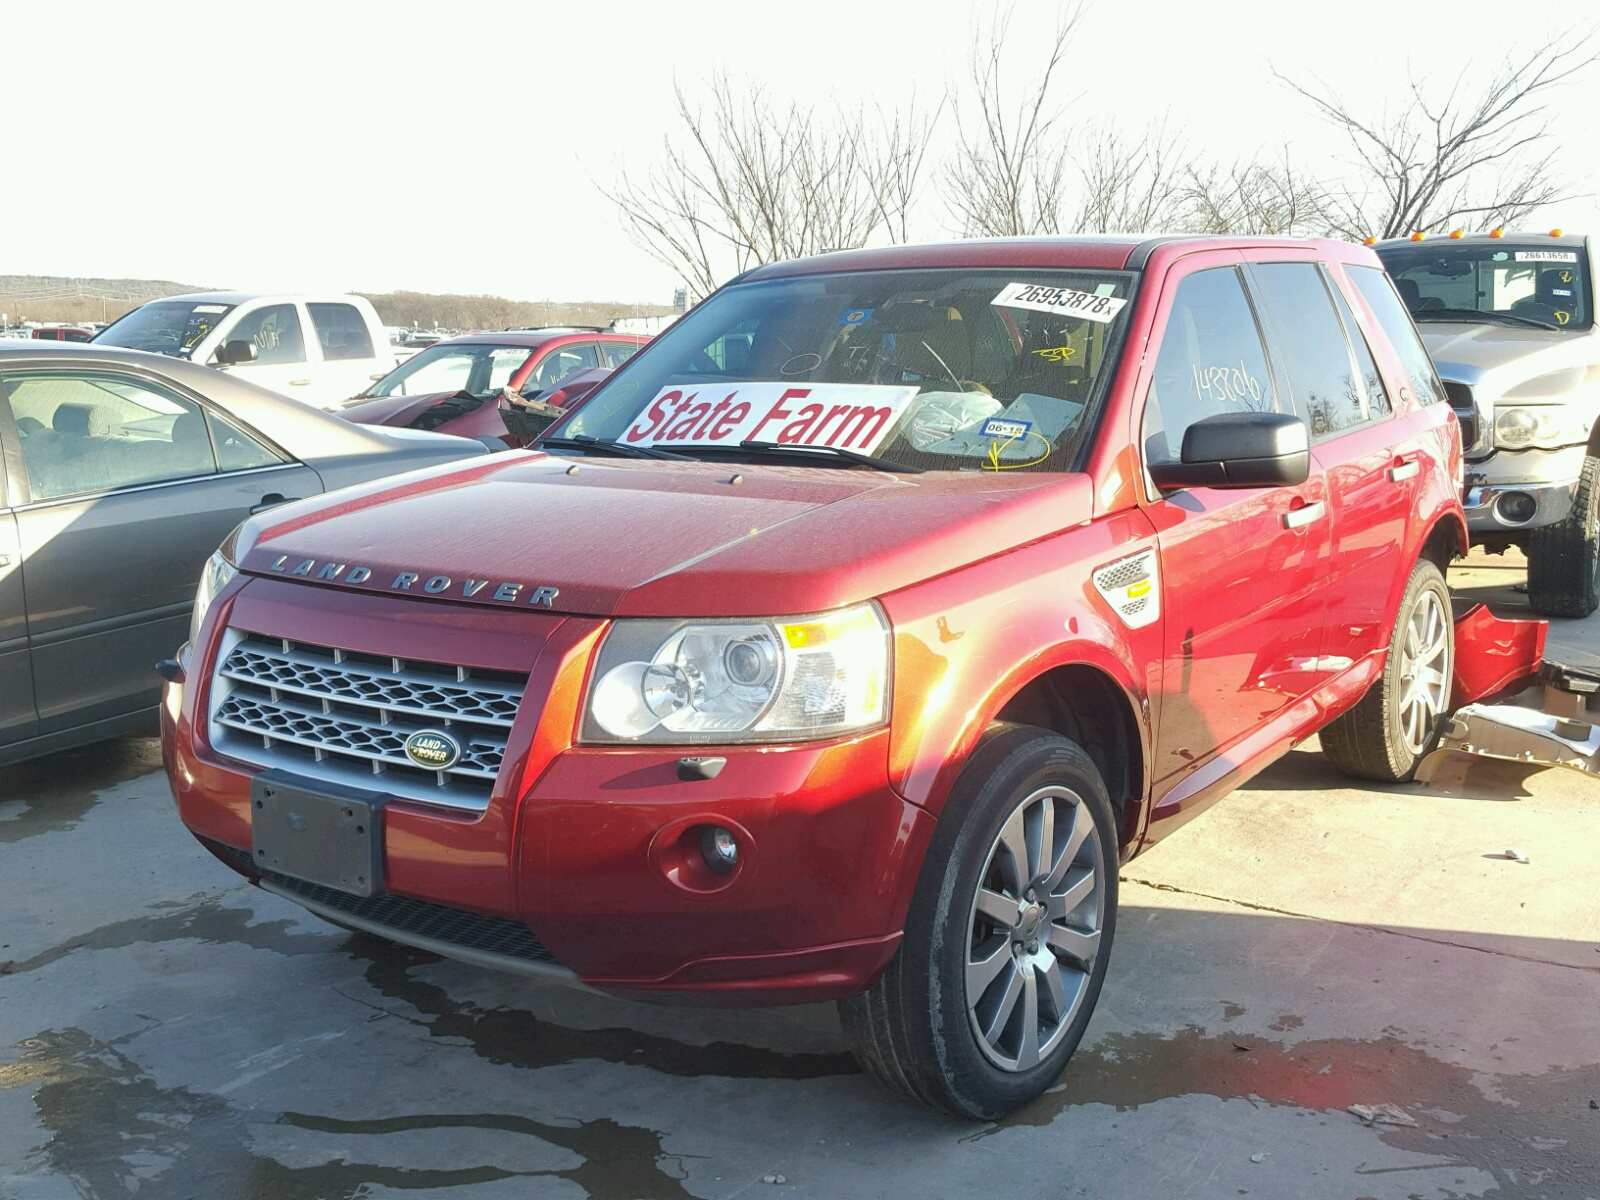 beach west vin auctions palm land on carfinder left lot se sale landrover auction online ended for auto rover title of view en fl copart certificate